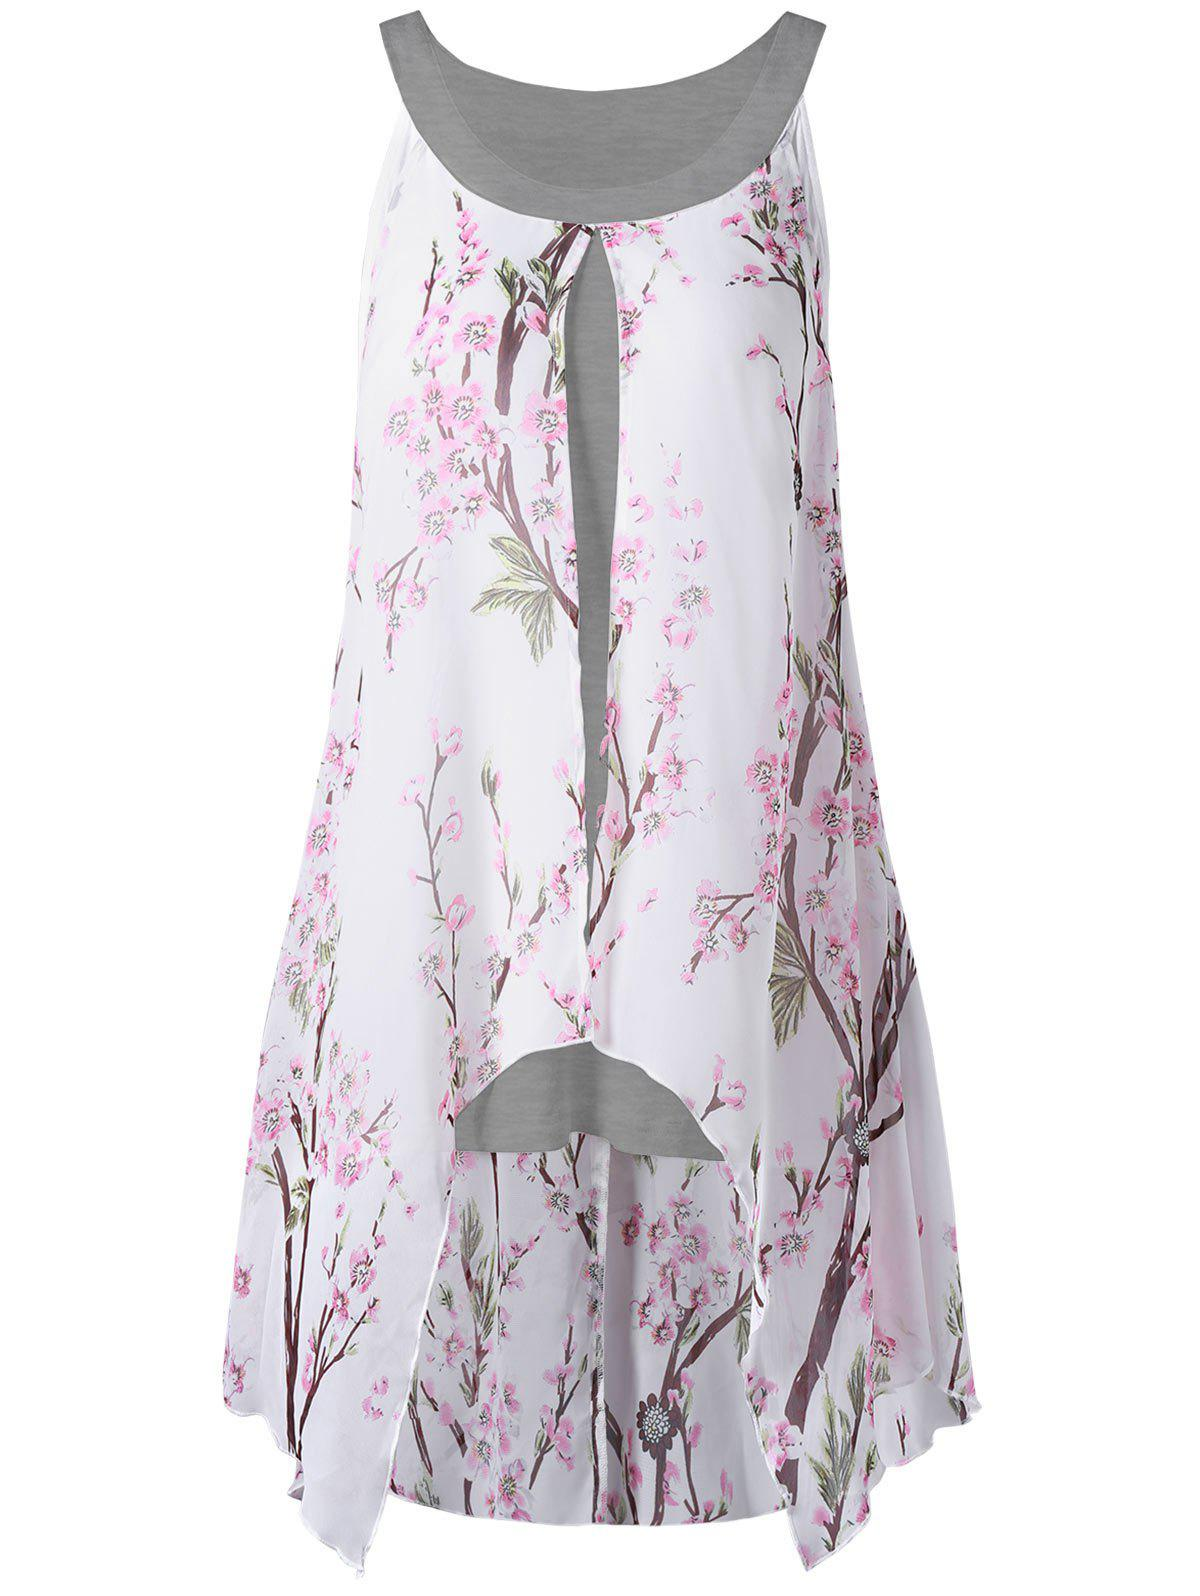 Plus Size Tiny Floral High Low Blouse plus size high low floral embroidered dress